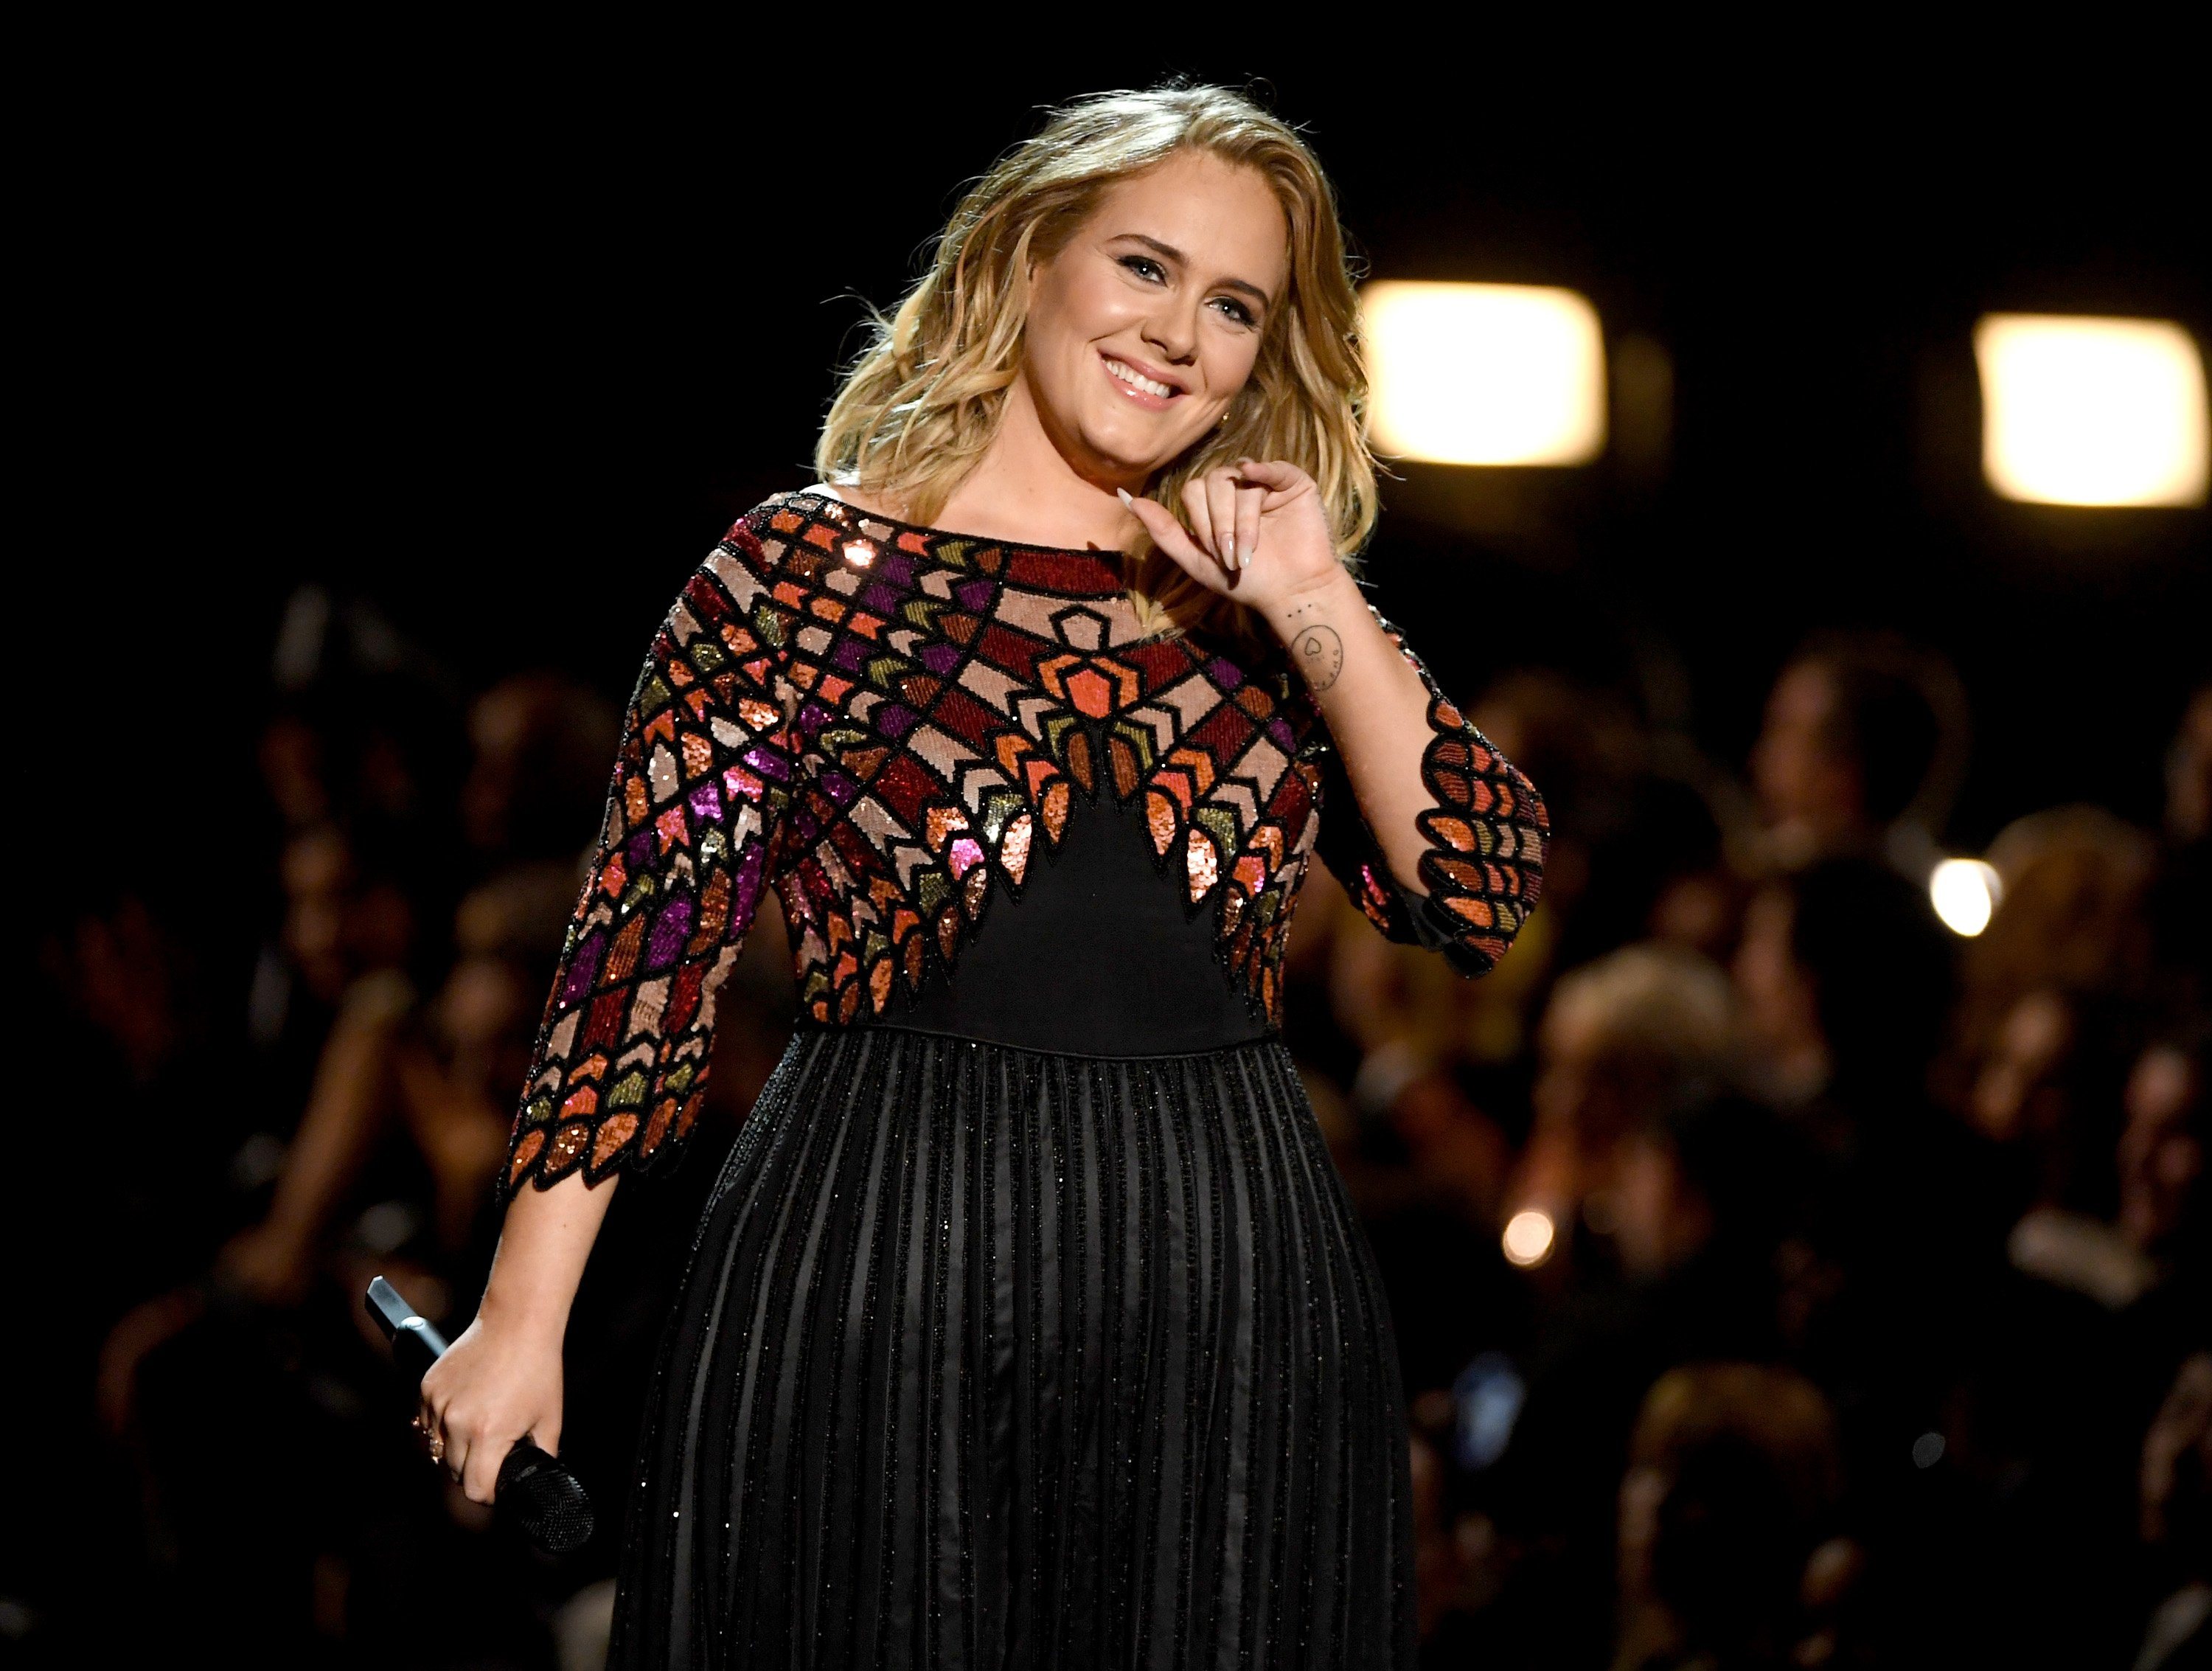 Image Credit: Getty Images / Adele performing at a concert.